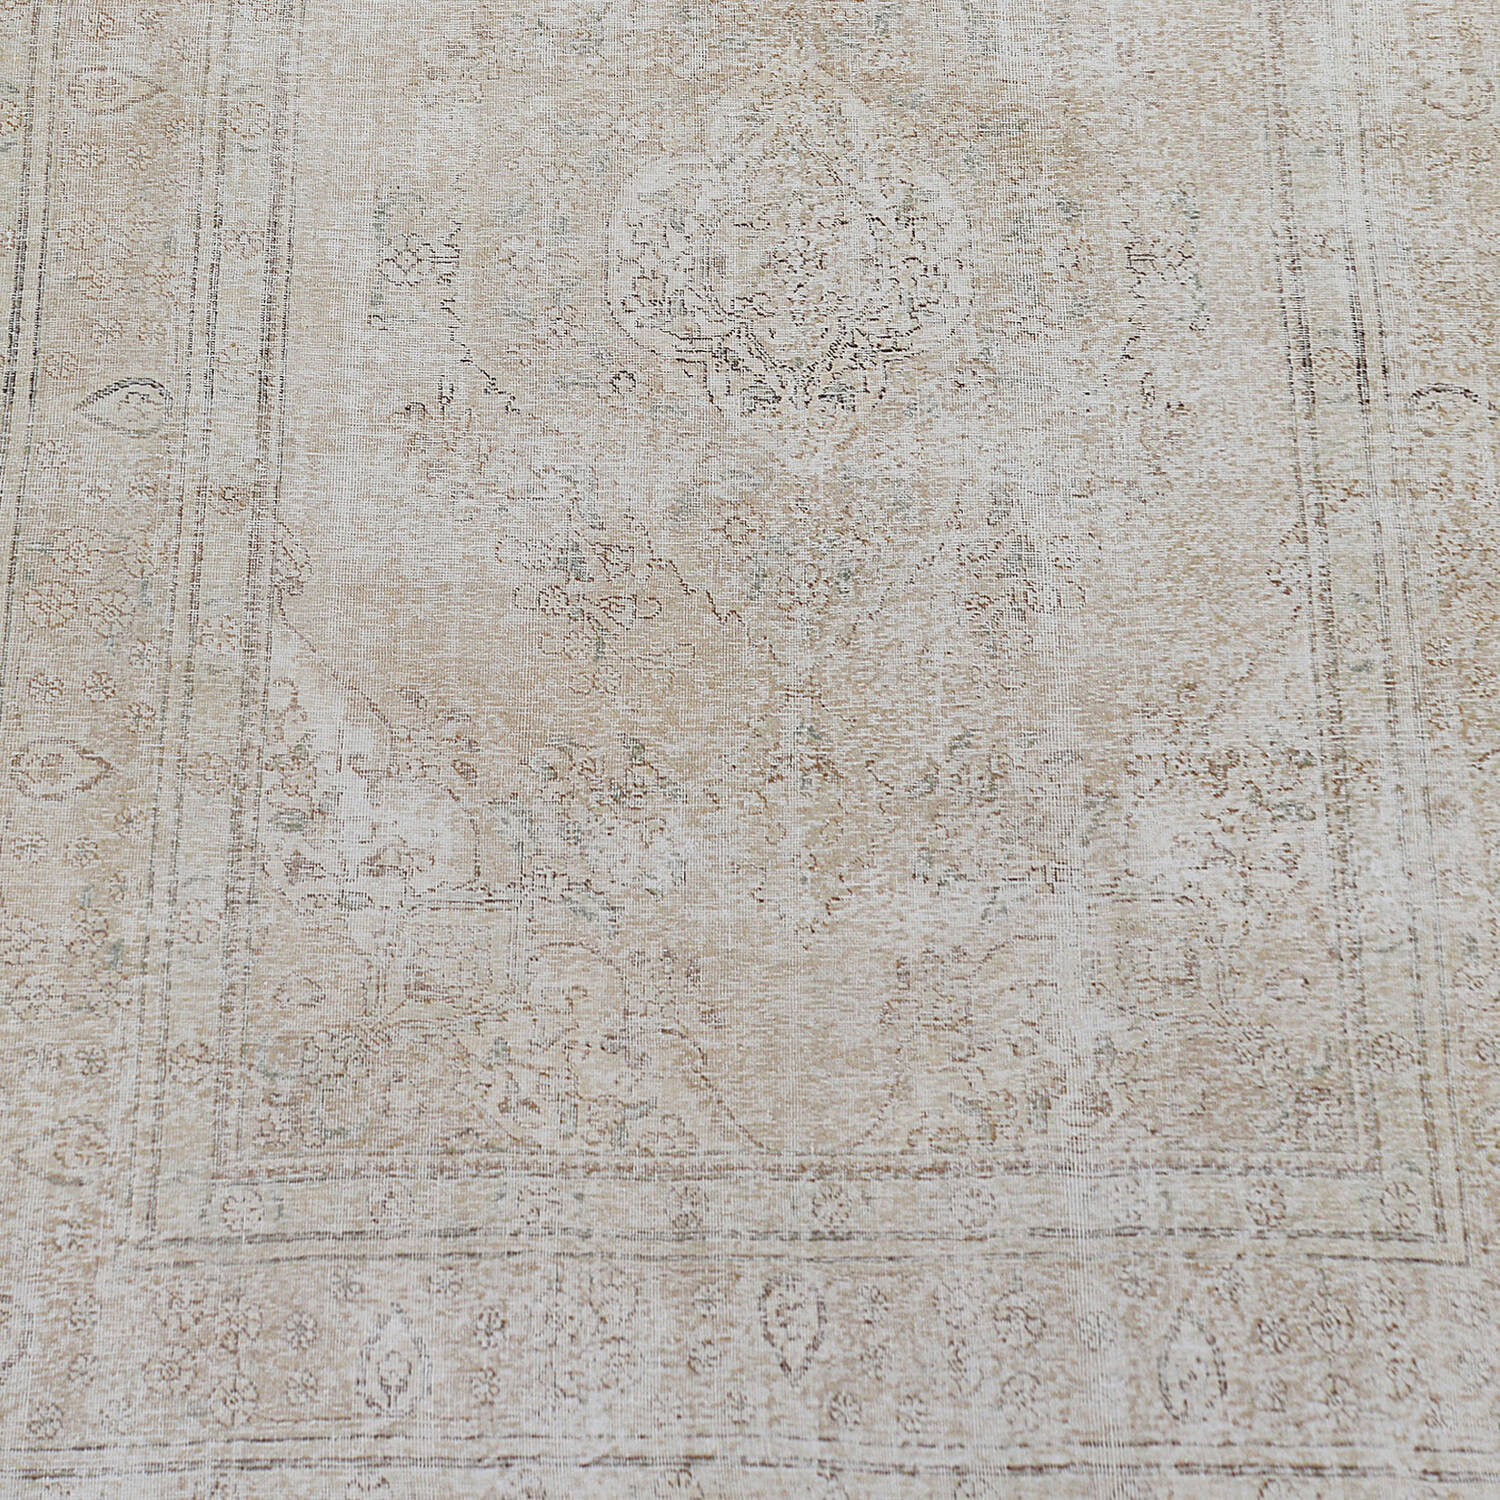 Antique Muted Floral Tabriz Distressed Persian Area Rug 8x11 image 3